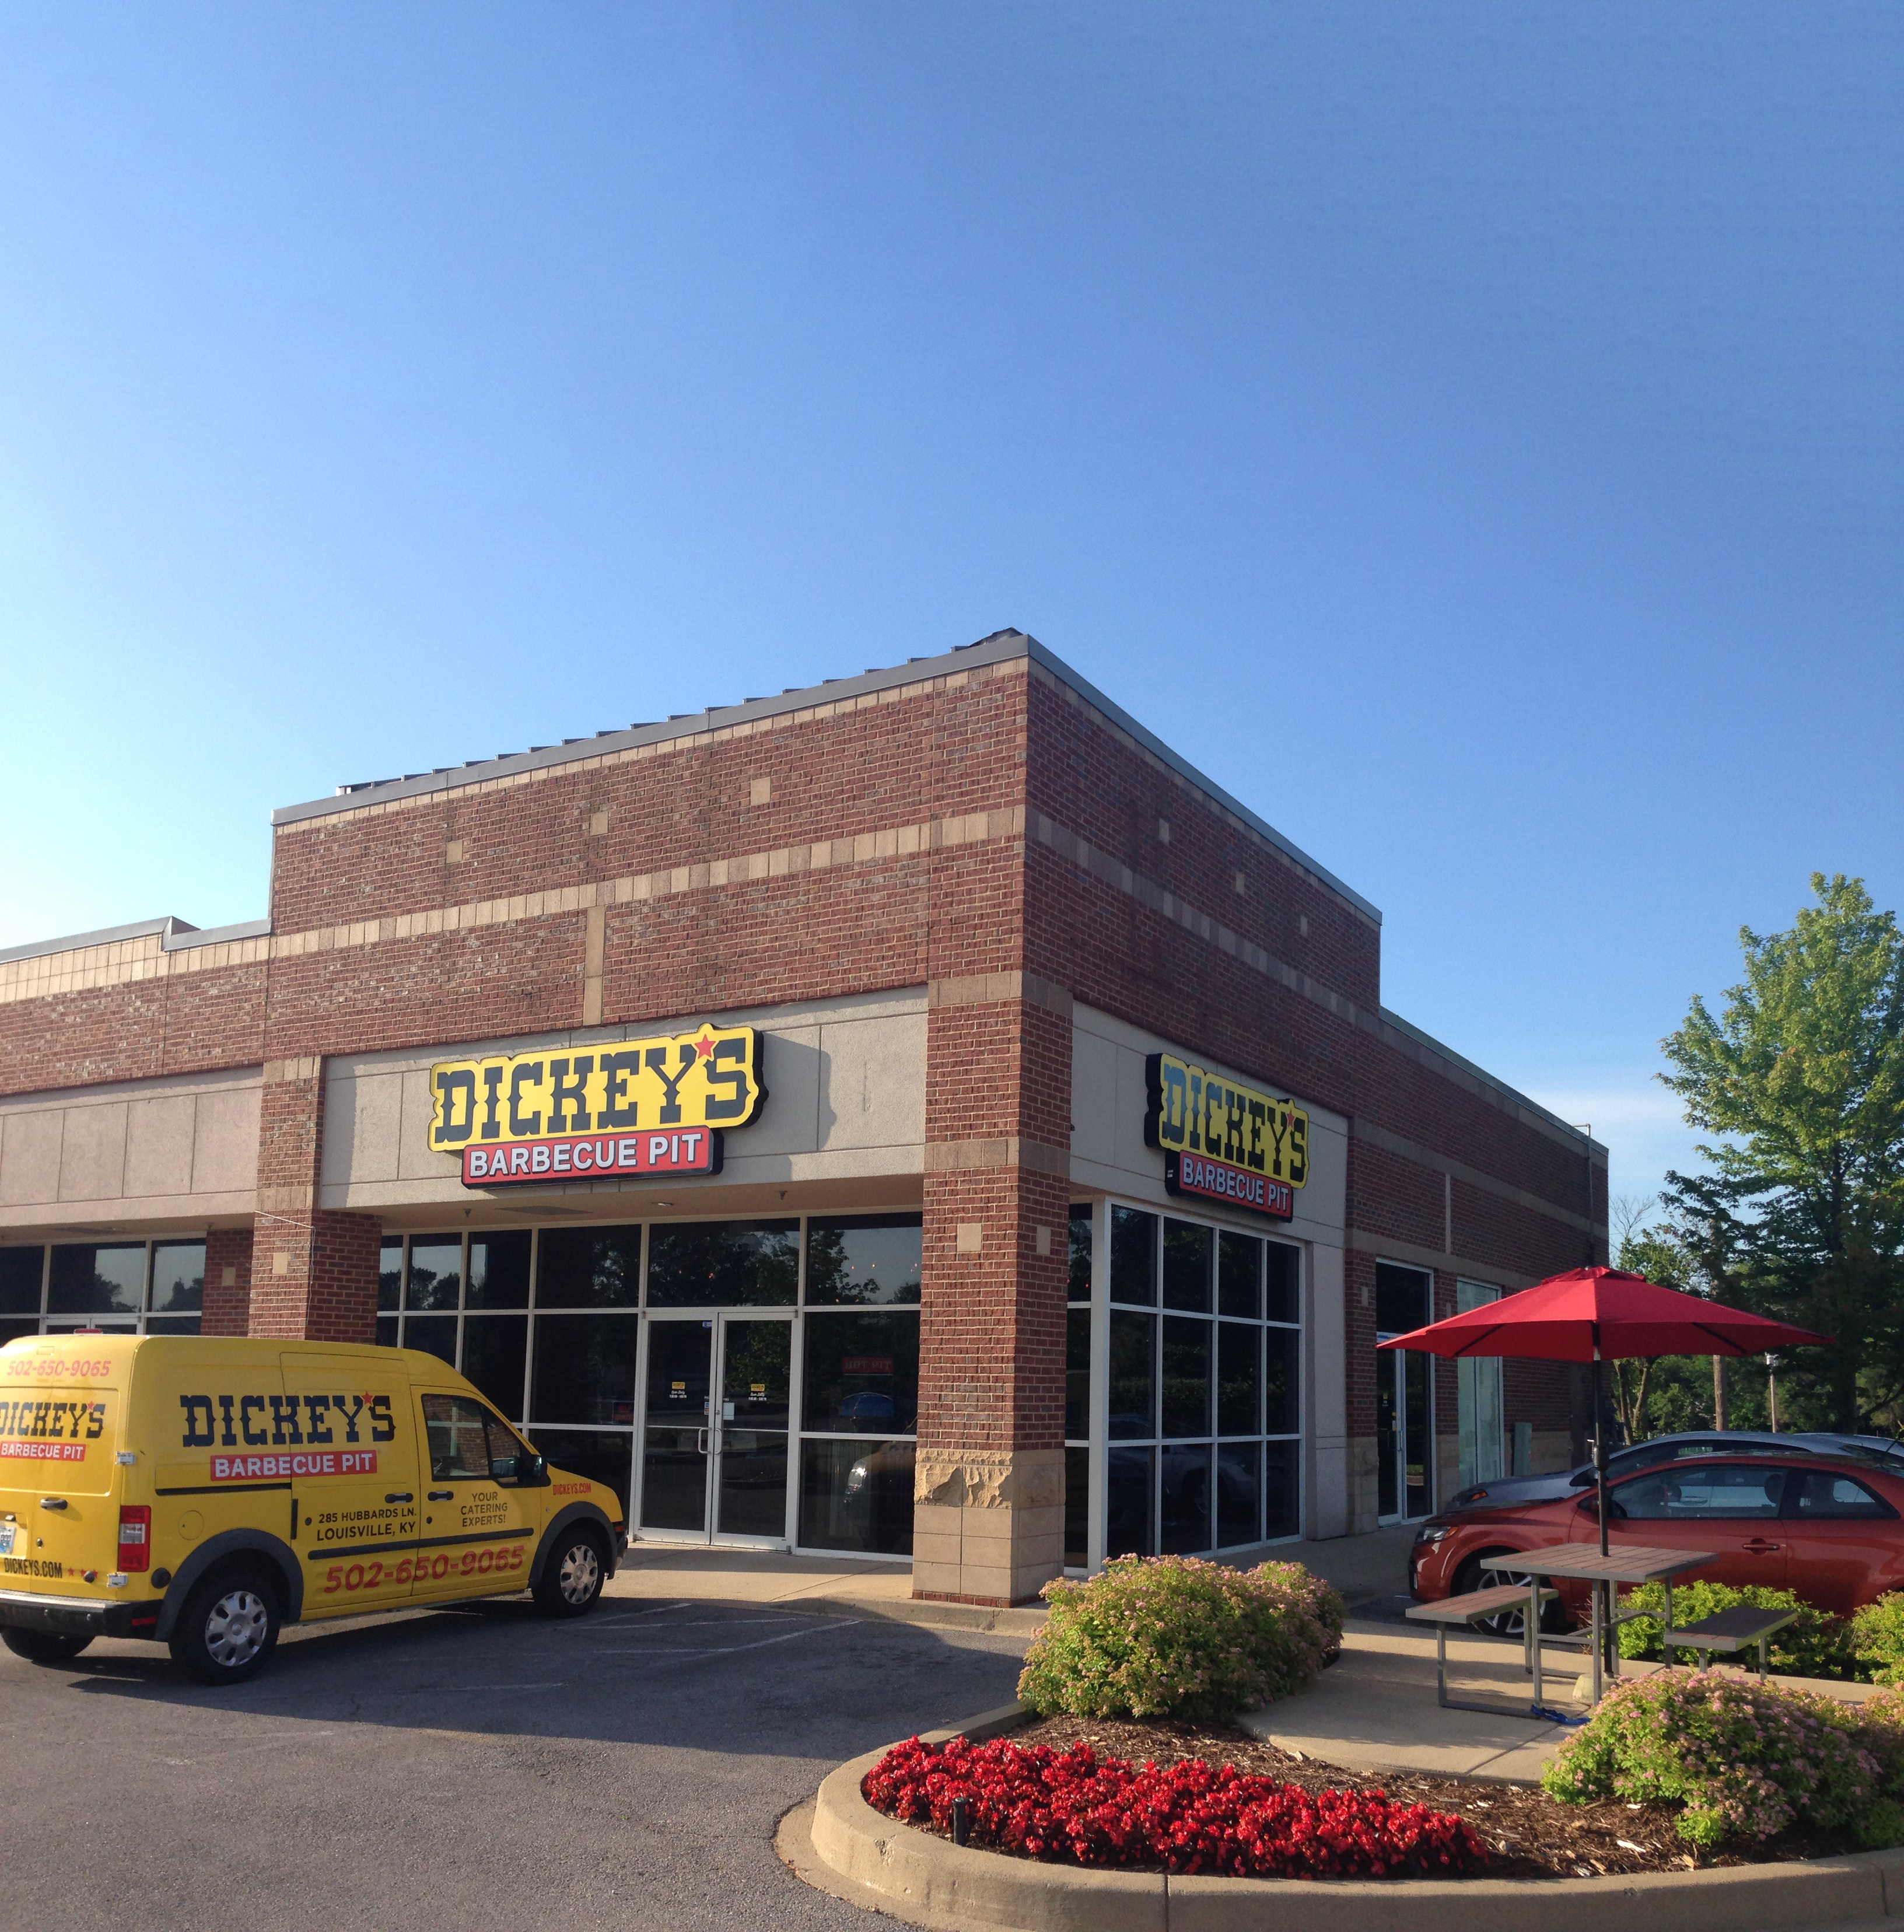 The Daily Meal: Gold Standard Cleaning System Debuts at Dickey's Barbecue Pit Locations Nationwide